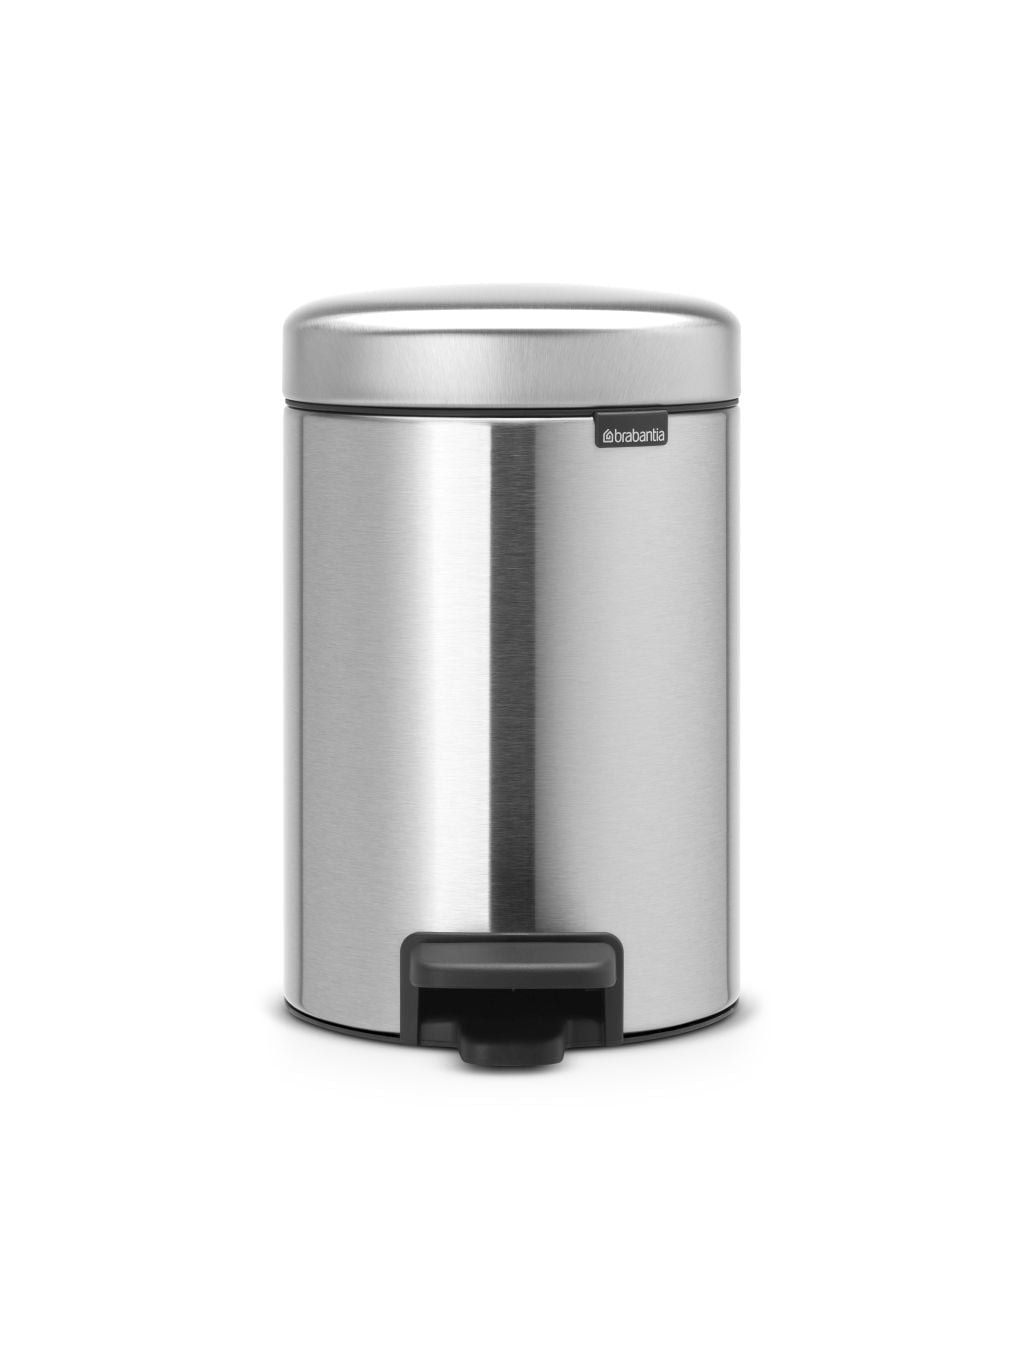 Brabantia New Icon Pedaalemmer FPP 3L Matt Steel